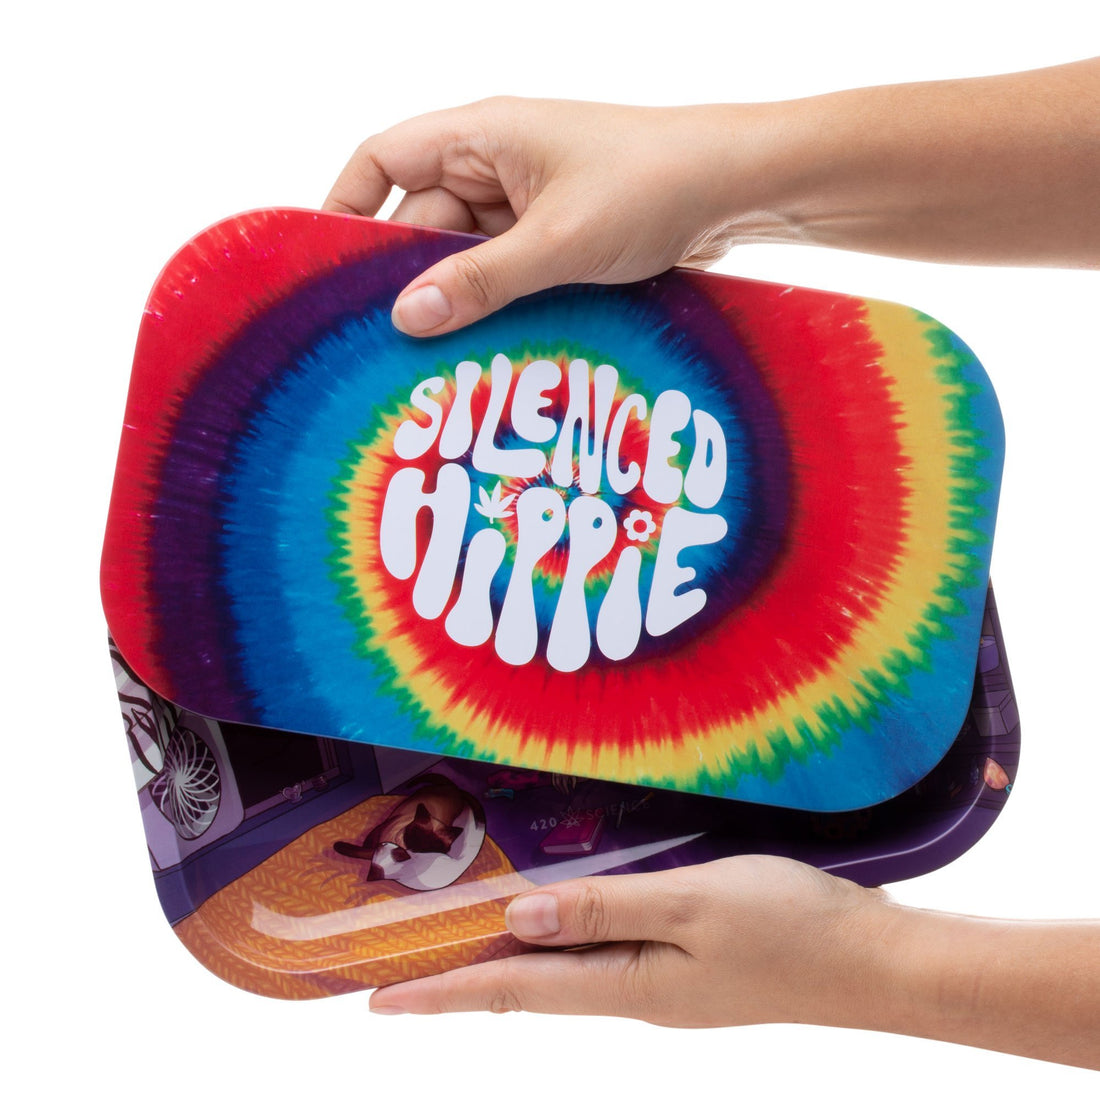 Silenced Hippie Rolling Tray